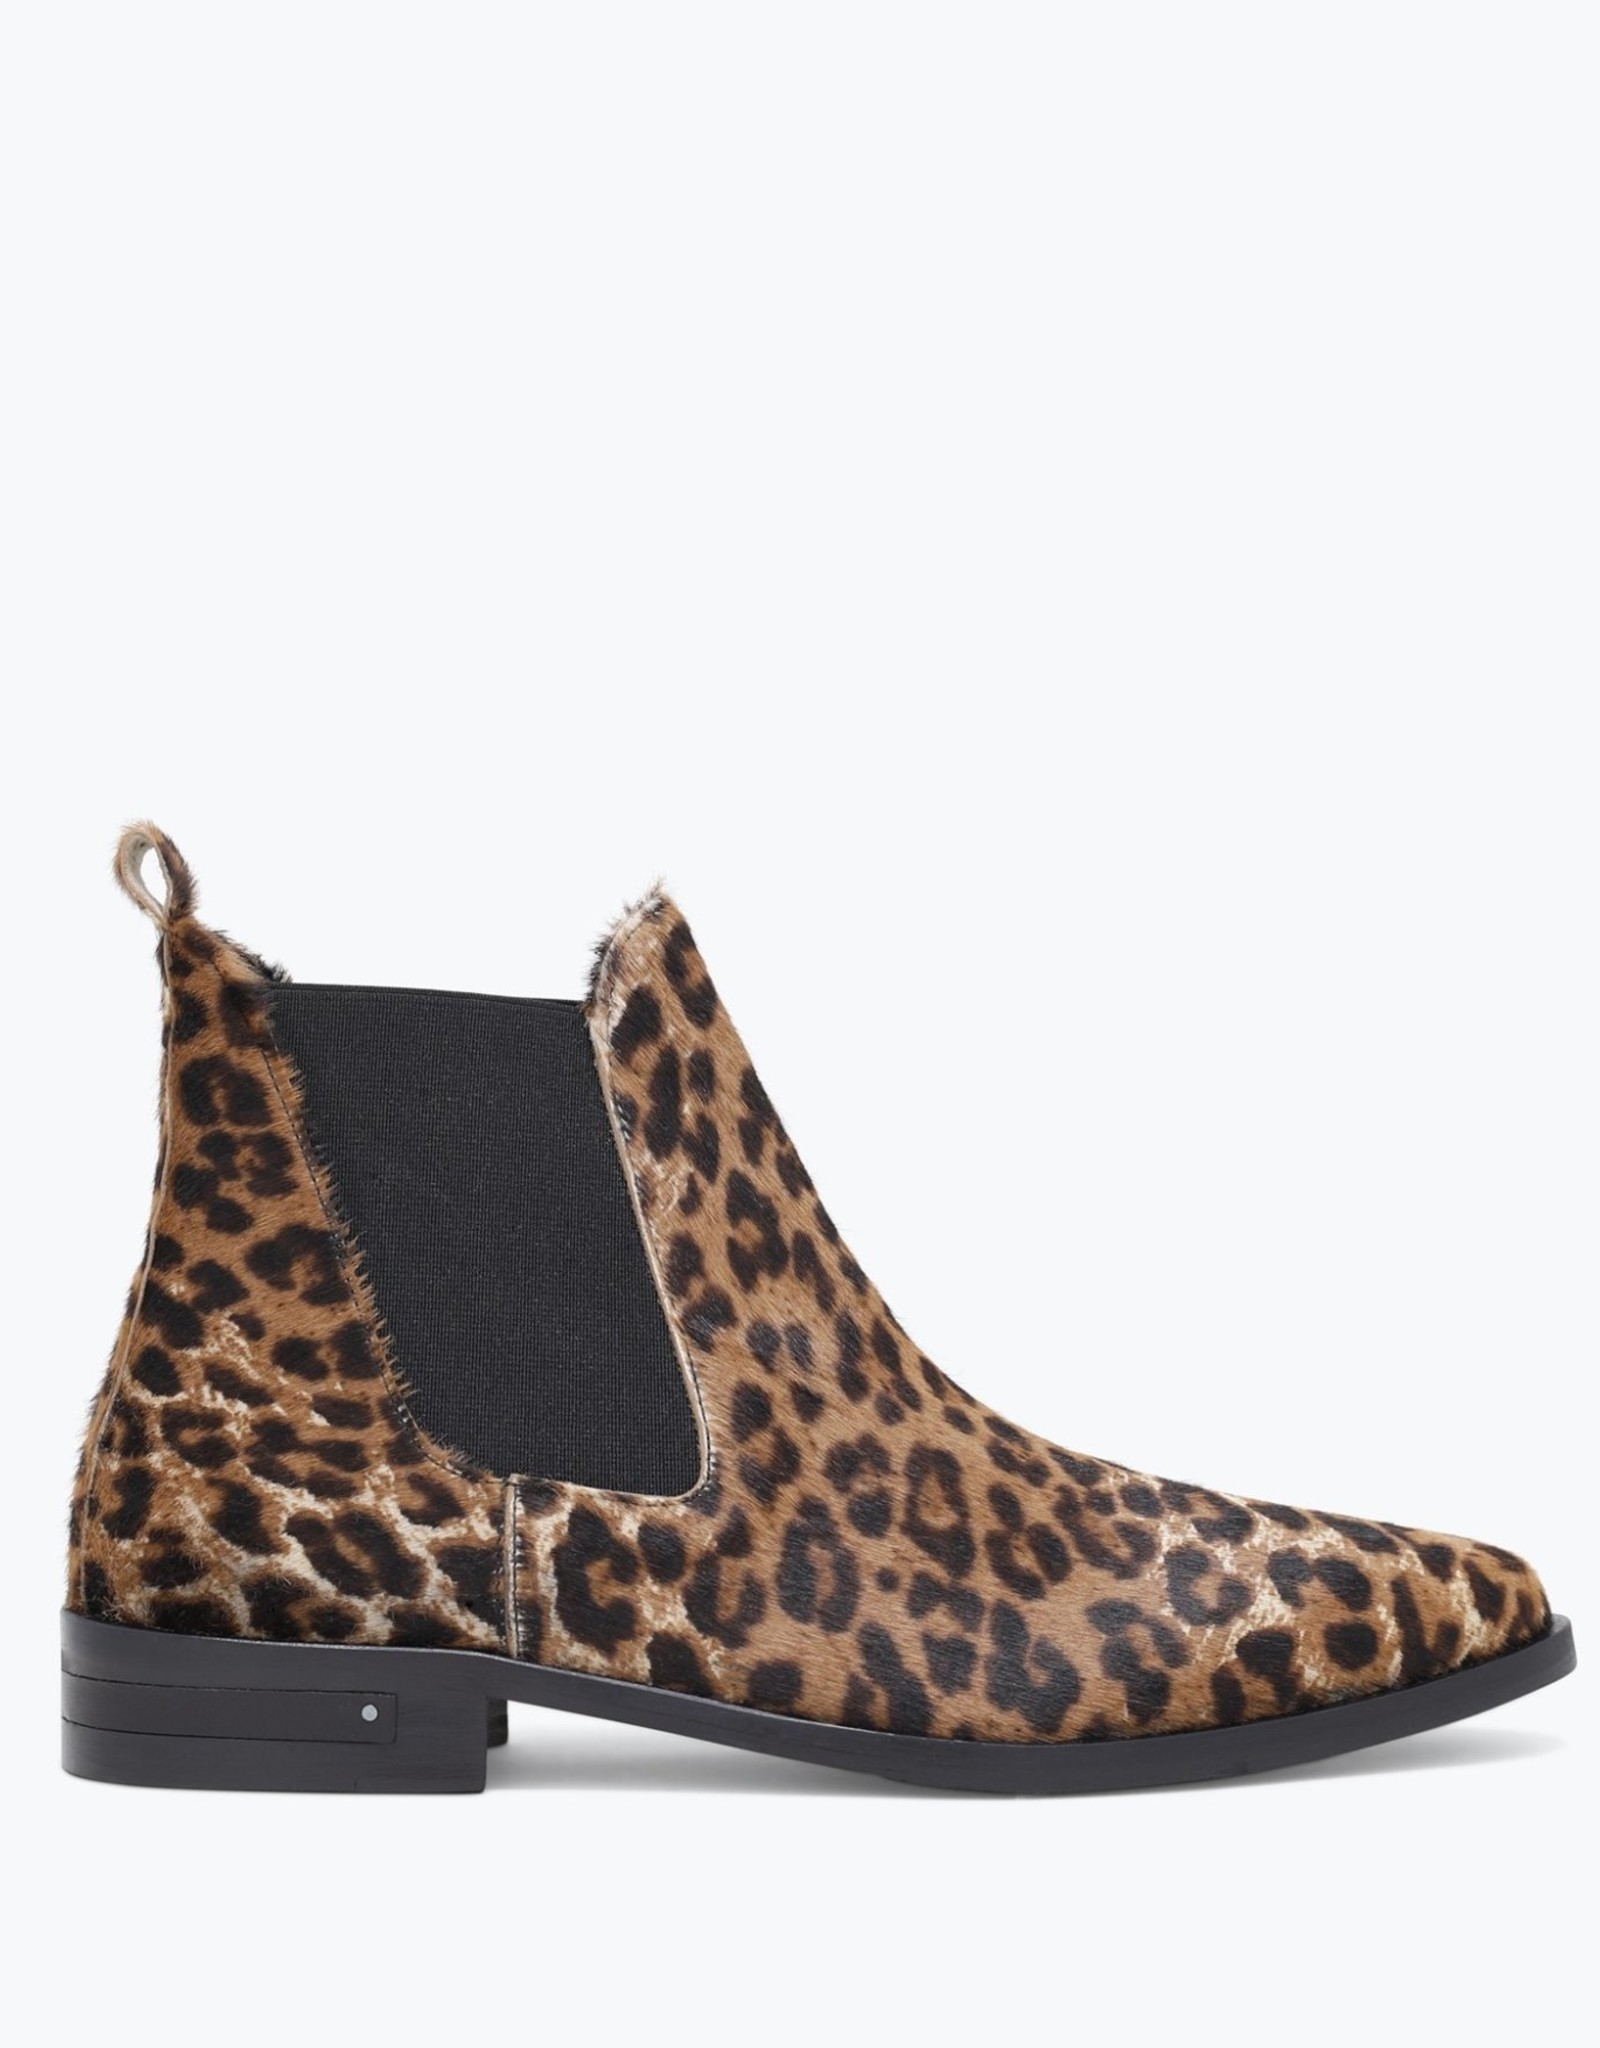 FREDA SALVADOR - Sleek Chelsea Boot